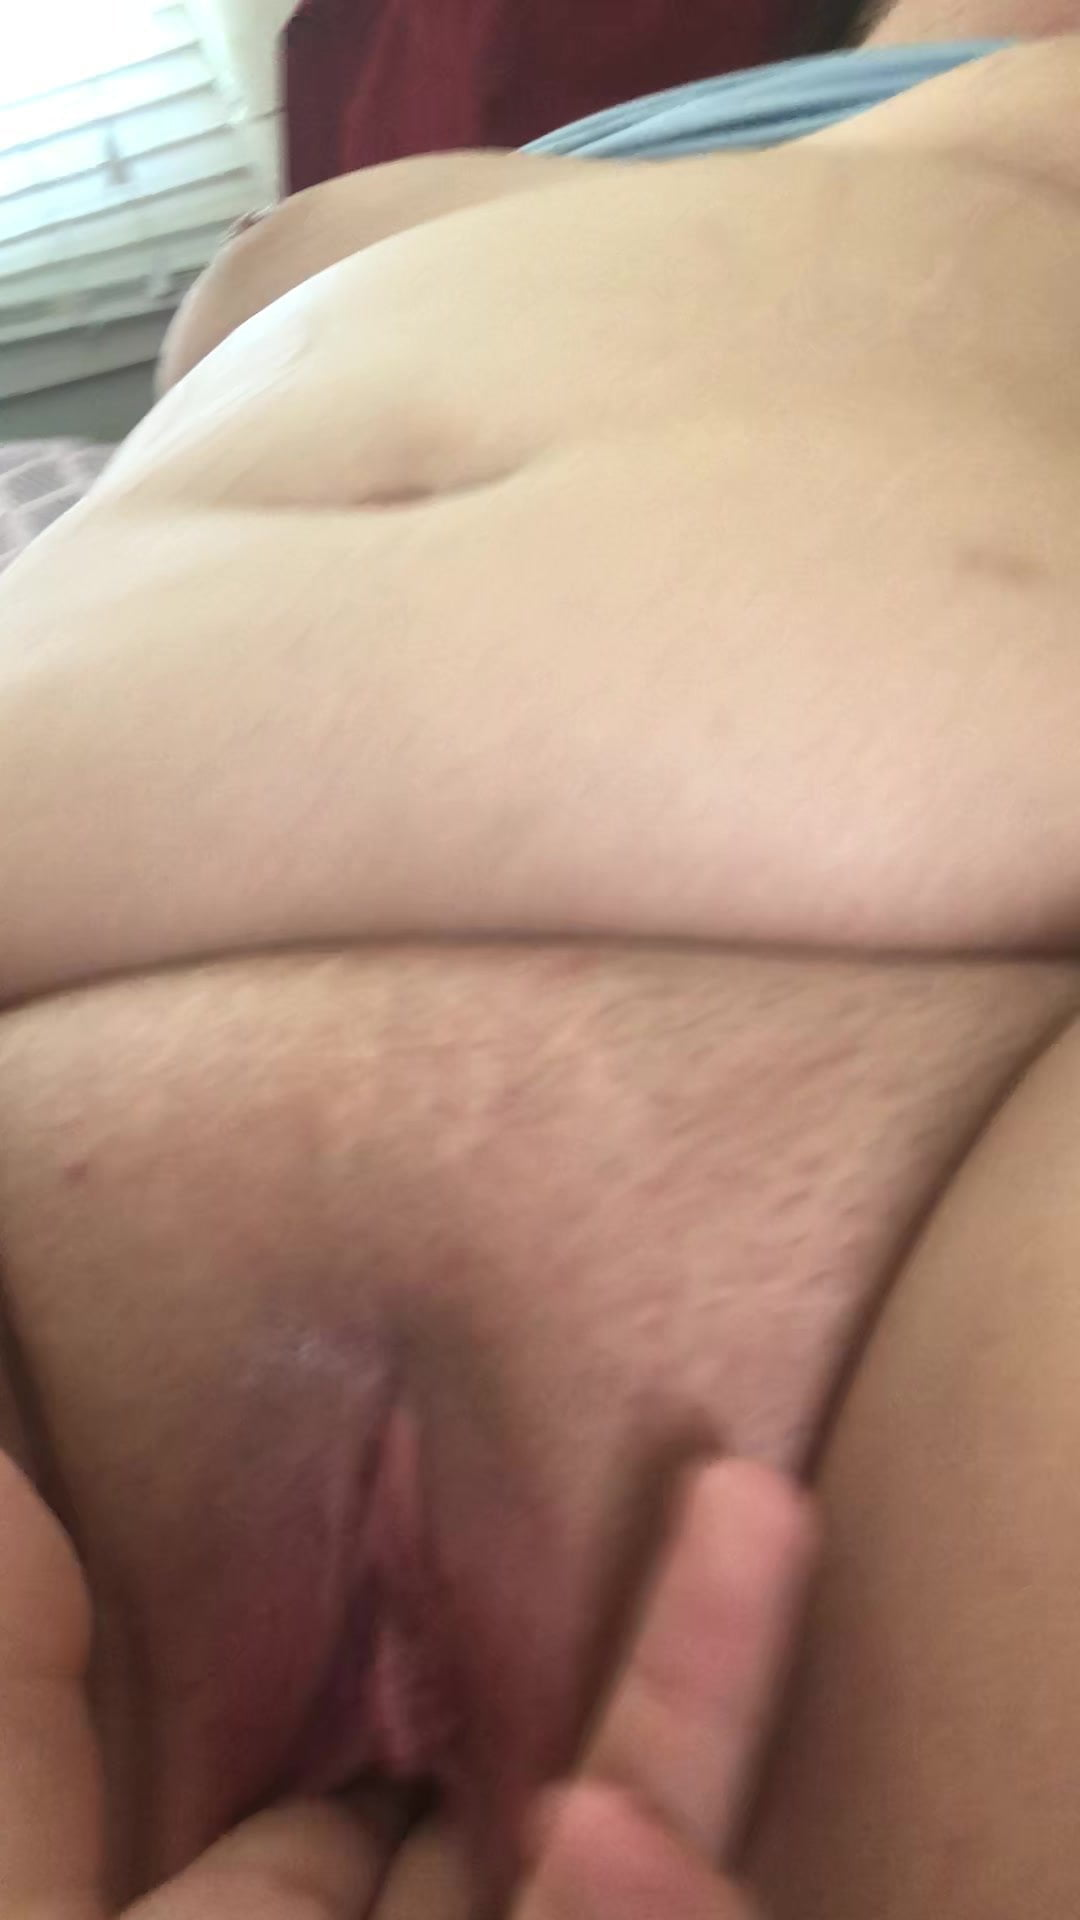 Getting finger fucked pov